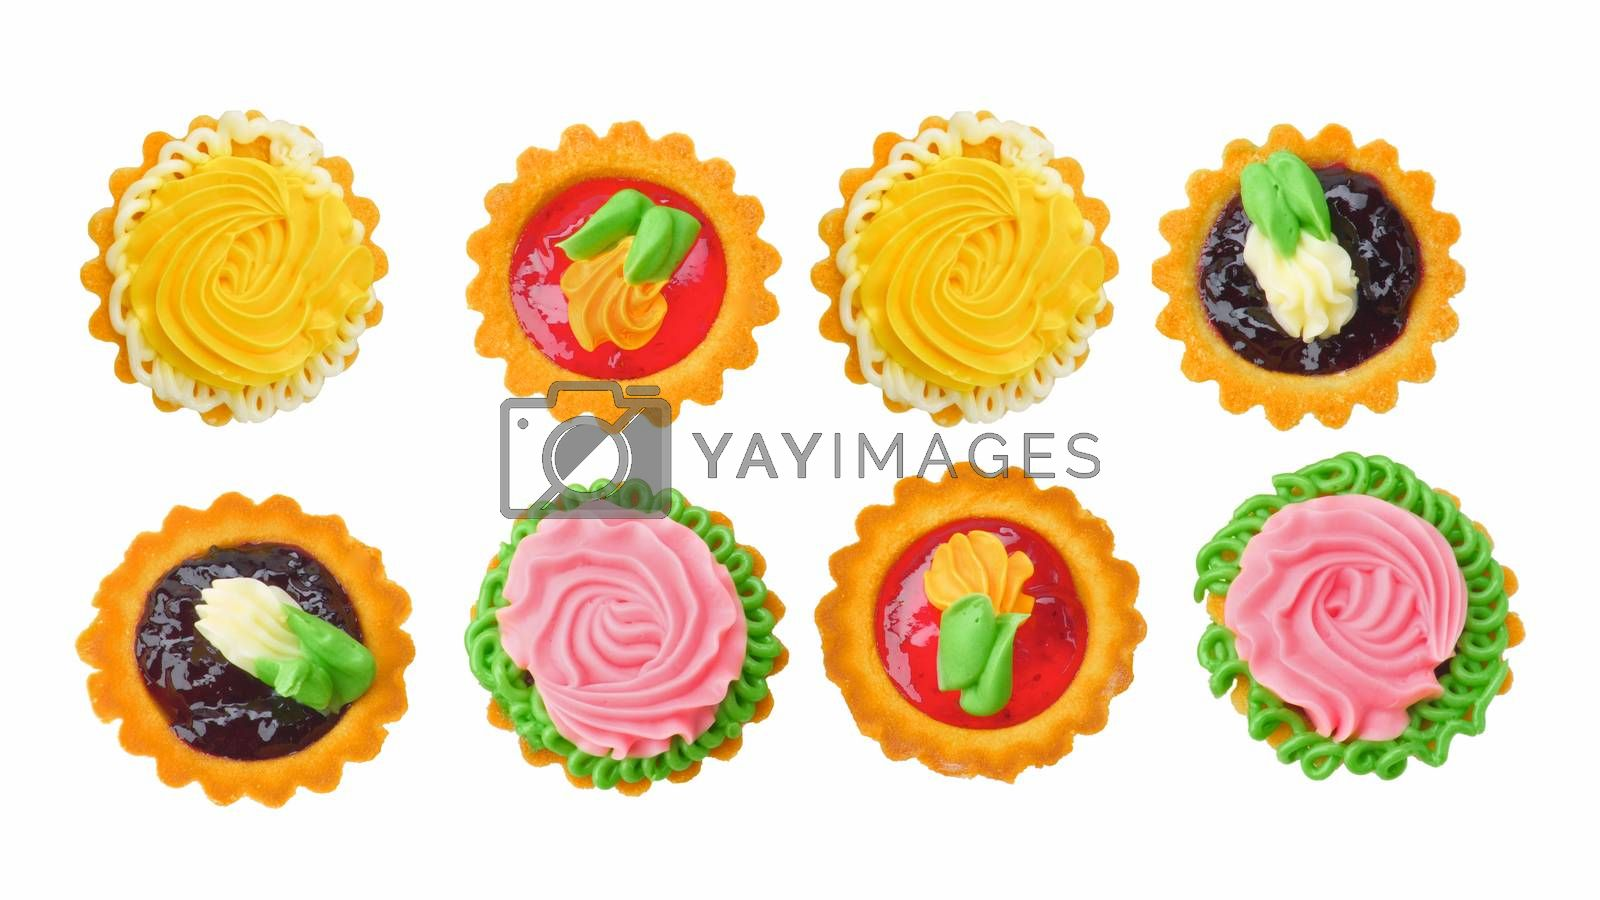 Two Rows of Delicious Little Tarts with Colored Butter Cream, Fruit Jam and Decoration isolated on White background. Top View